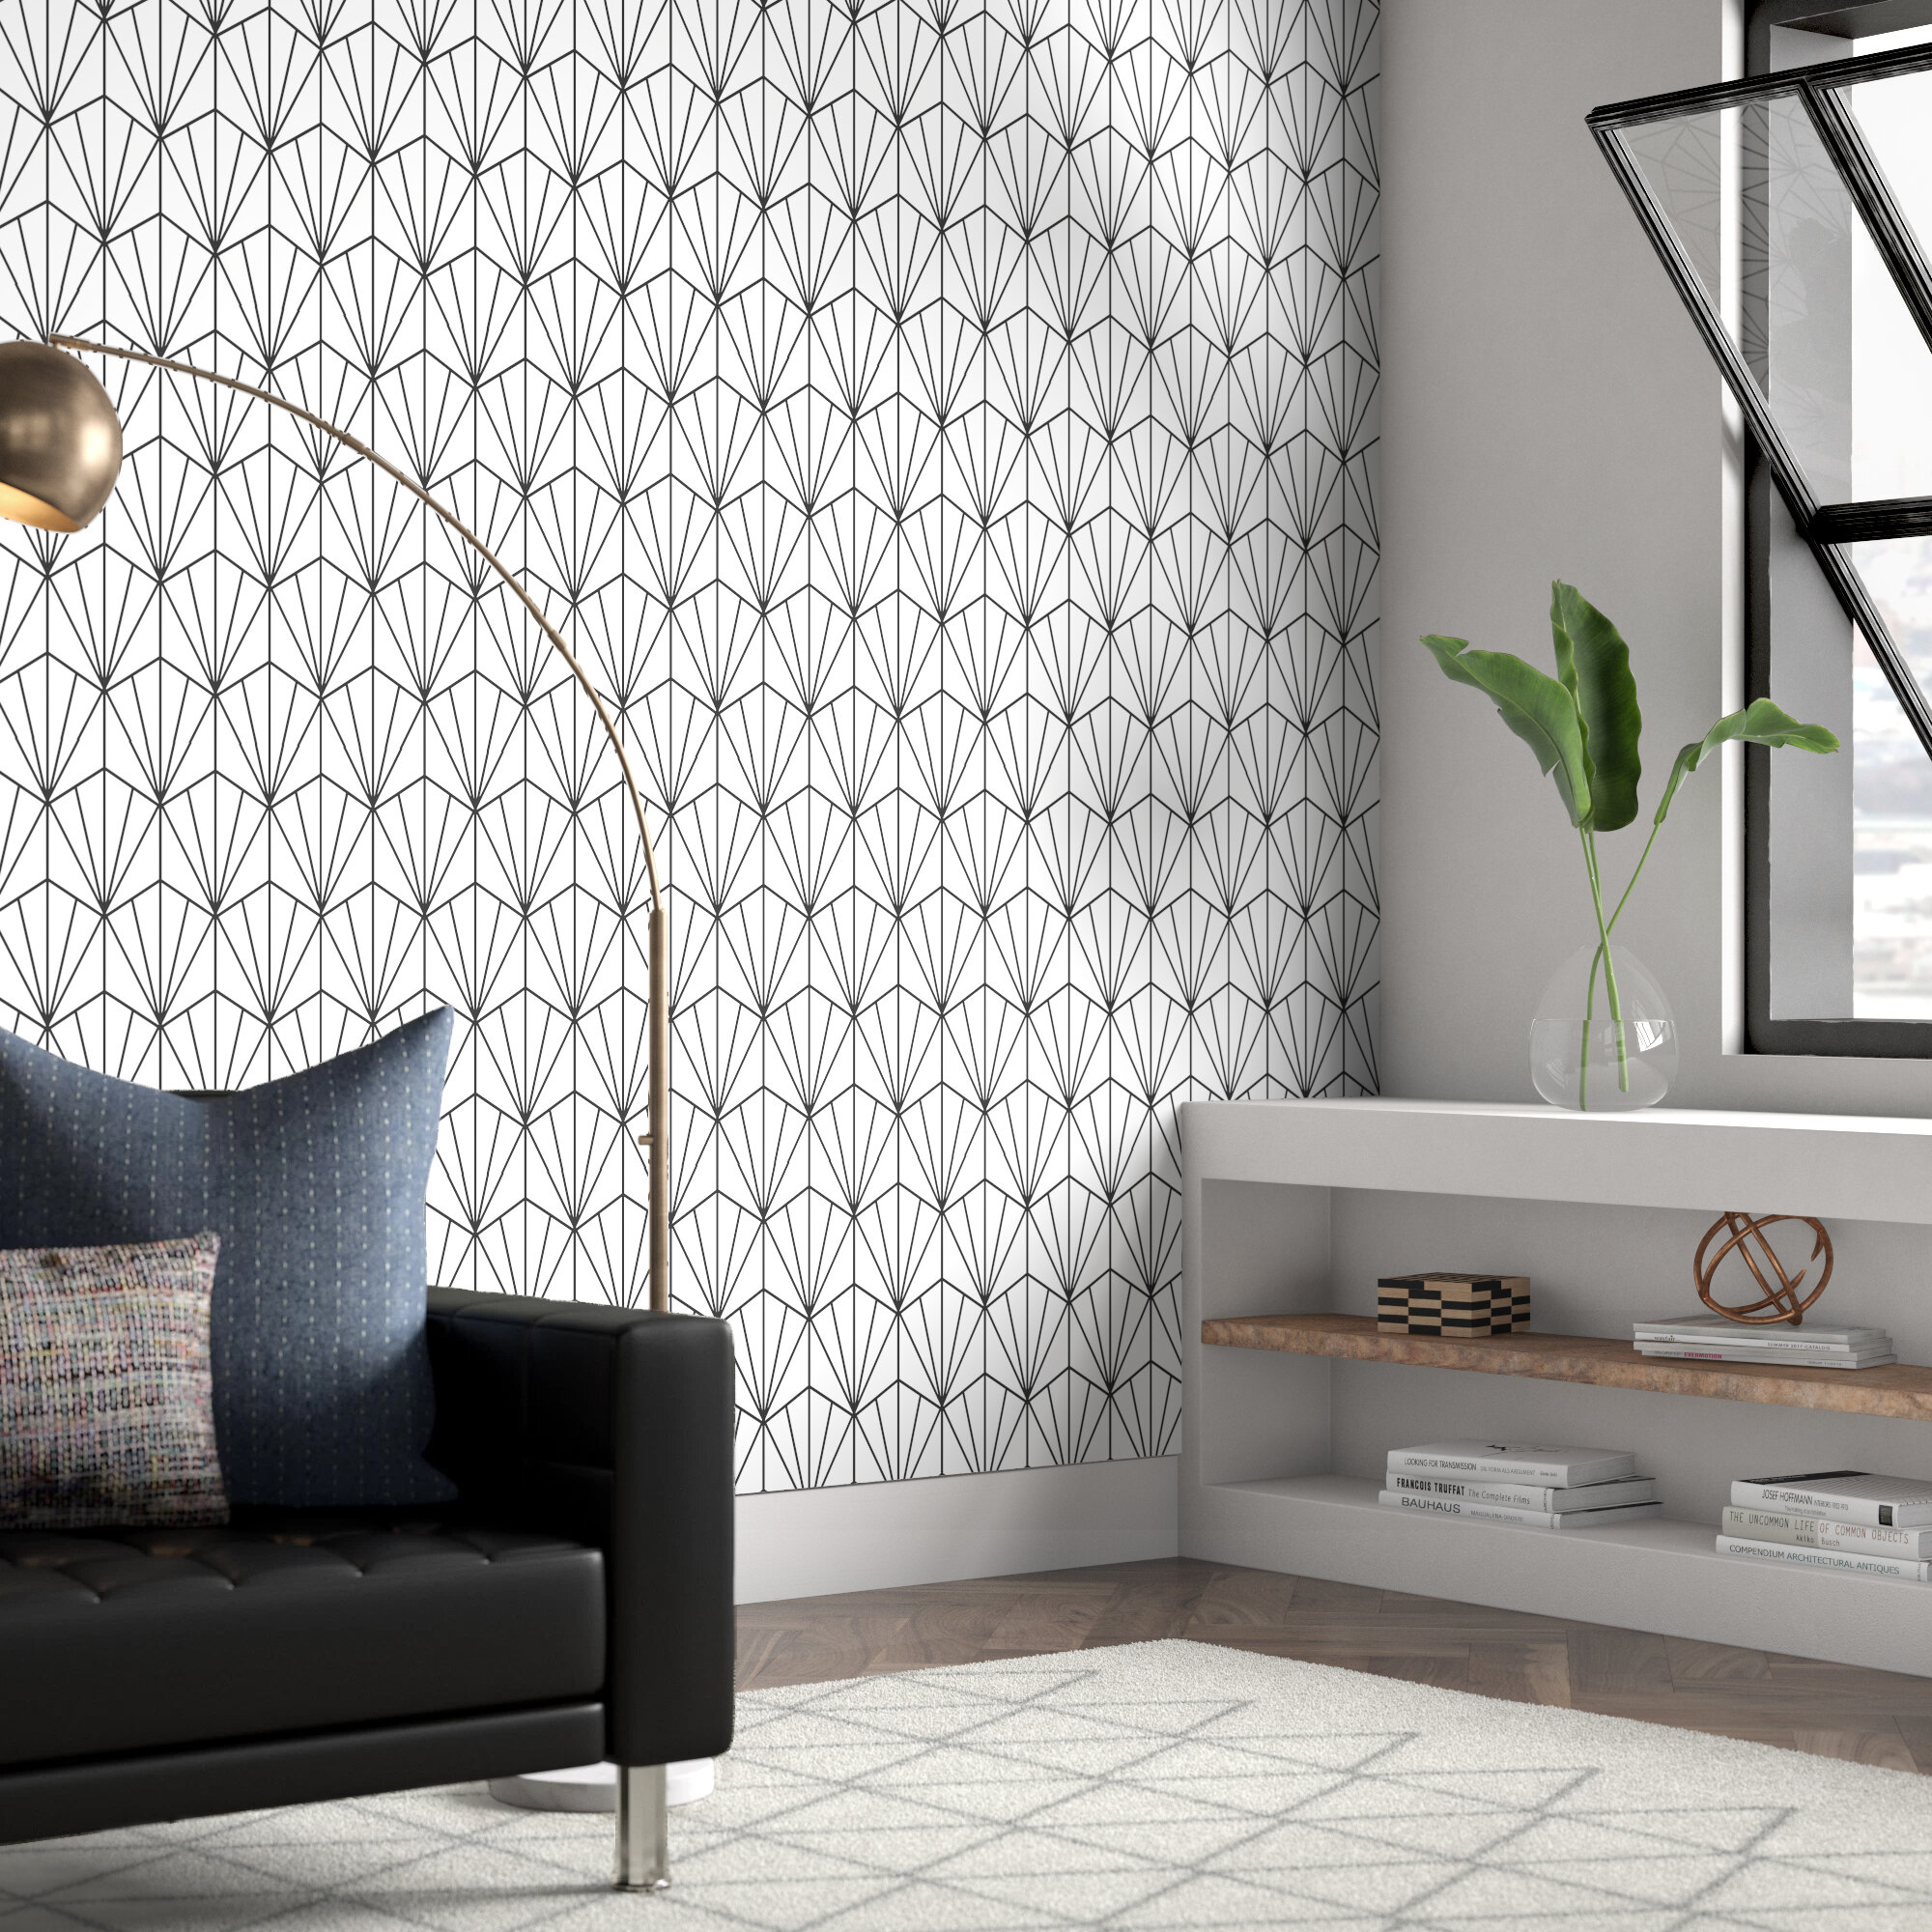 Wrought Studio Hartle 48 L x 24 W Peel and Stick Wallpaper Panel 2000x2000